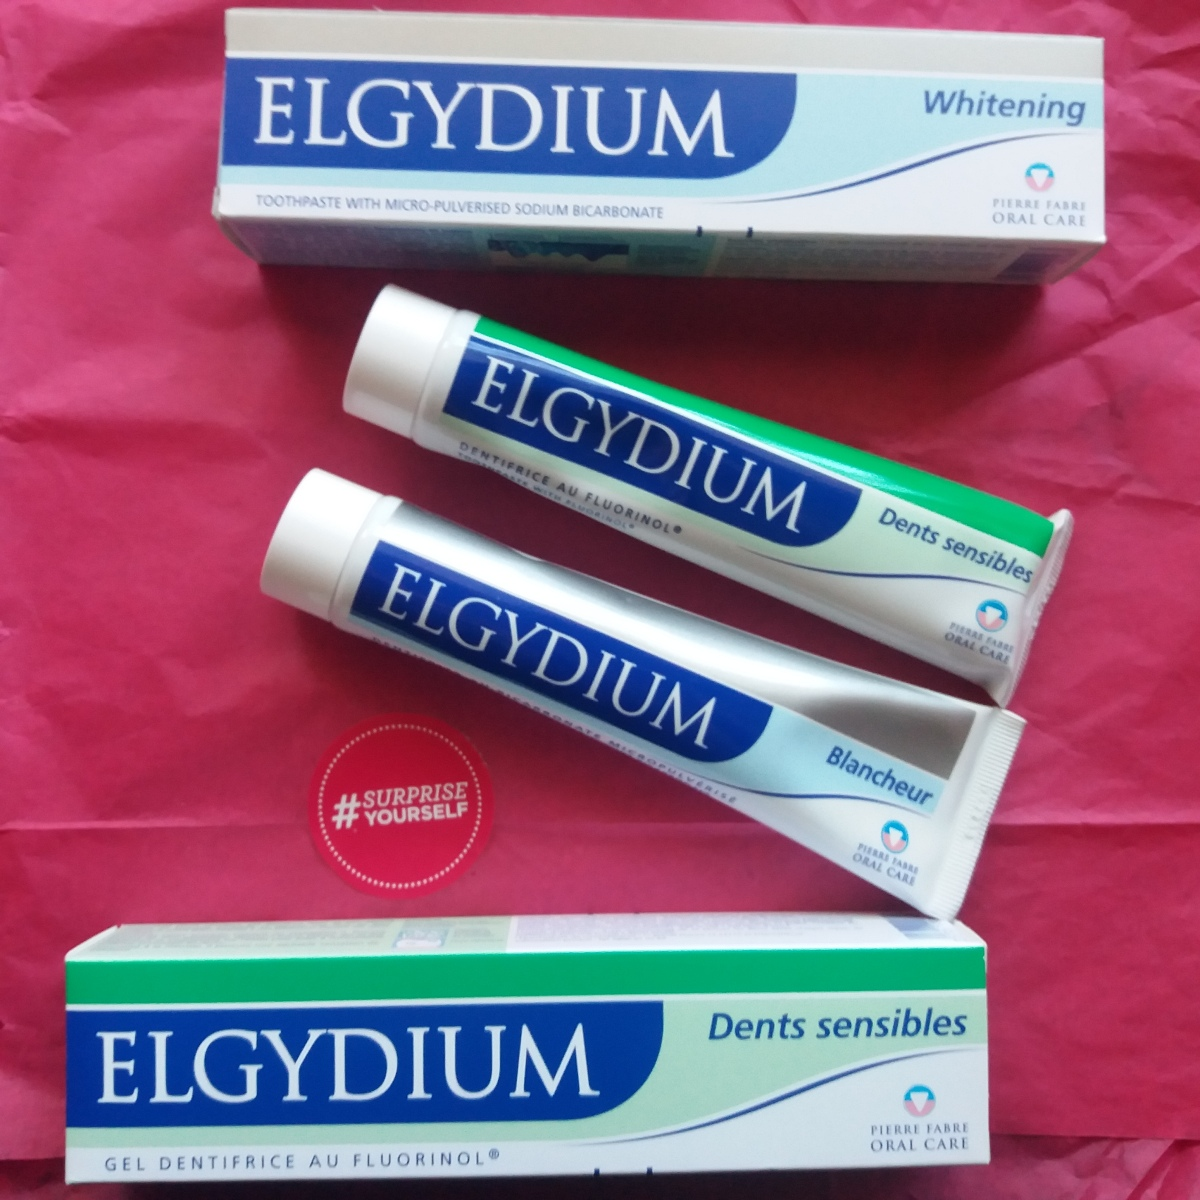 Review: Elgydium tooth paste (whitening and sensitive)